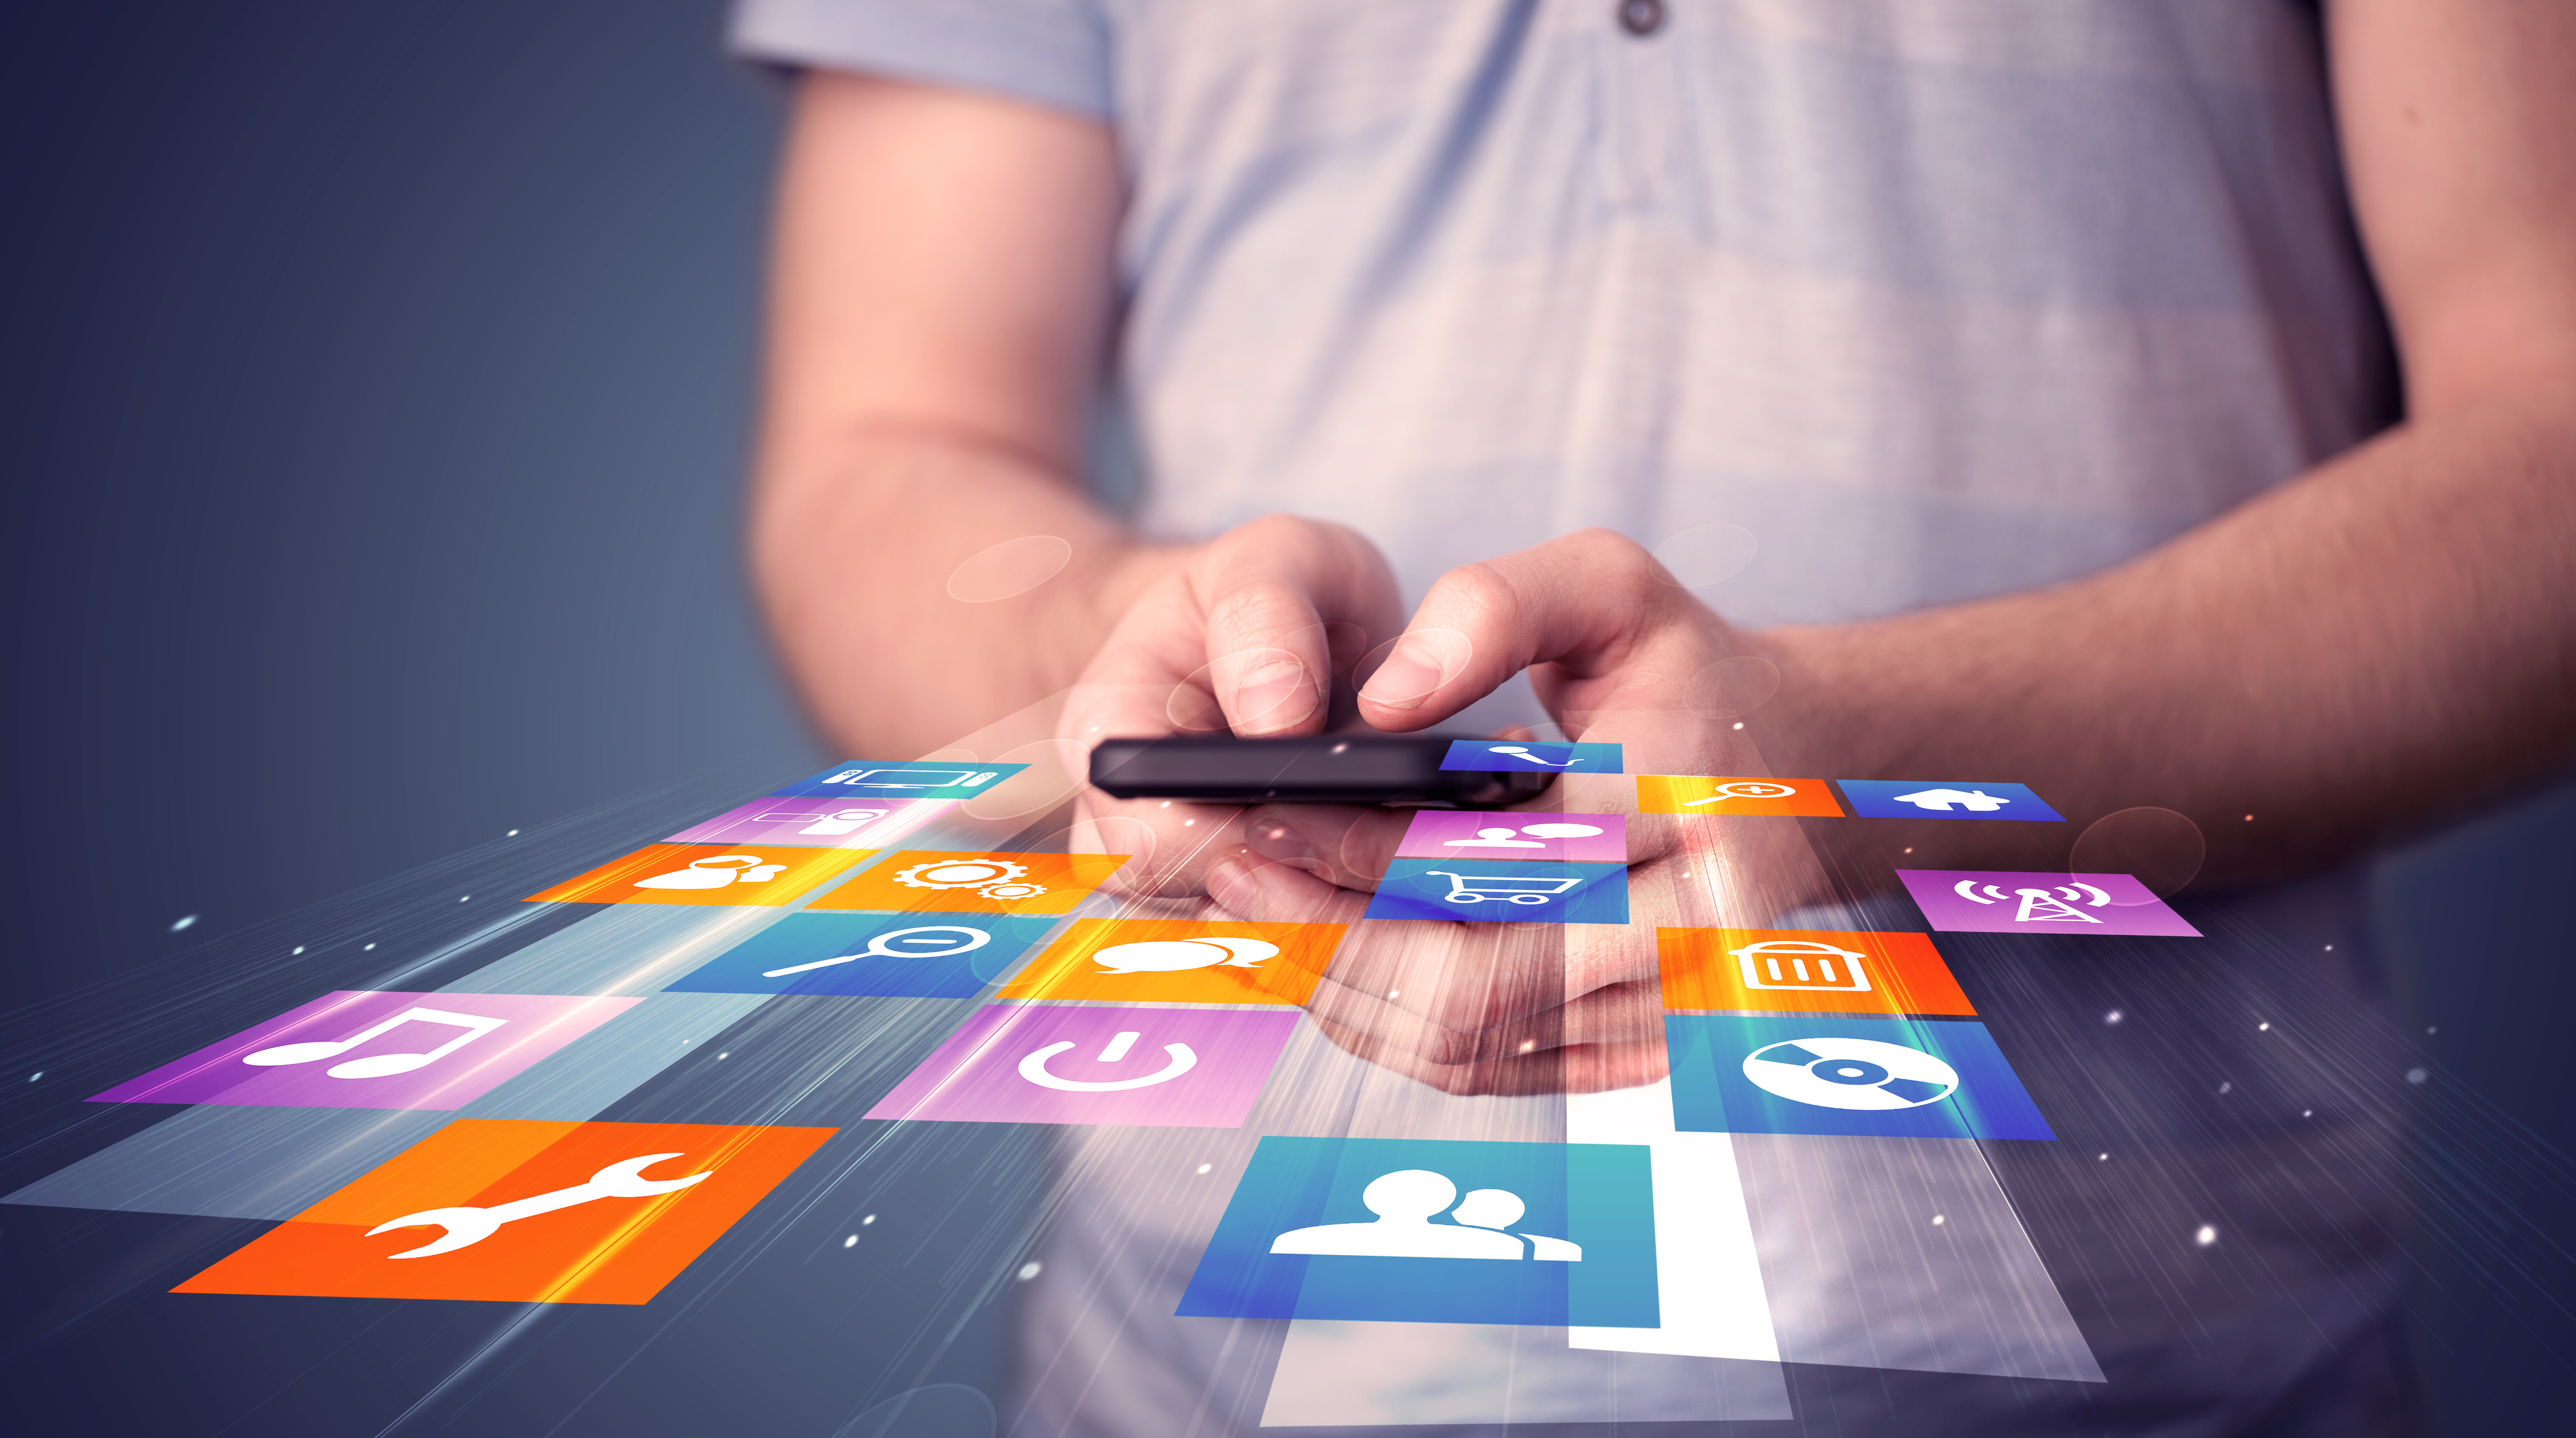 10 apps that can change your income ratio